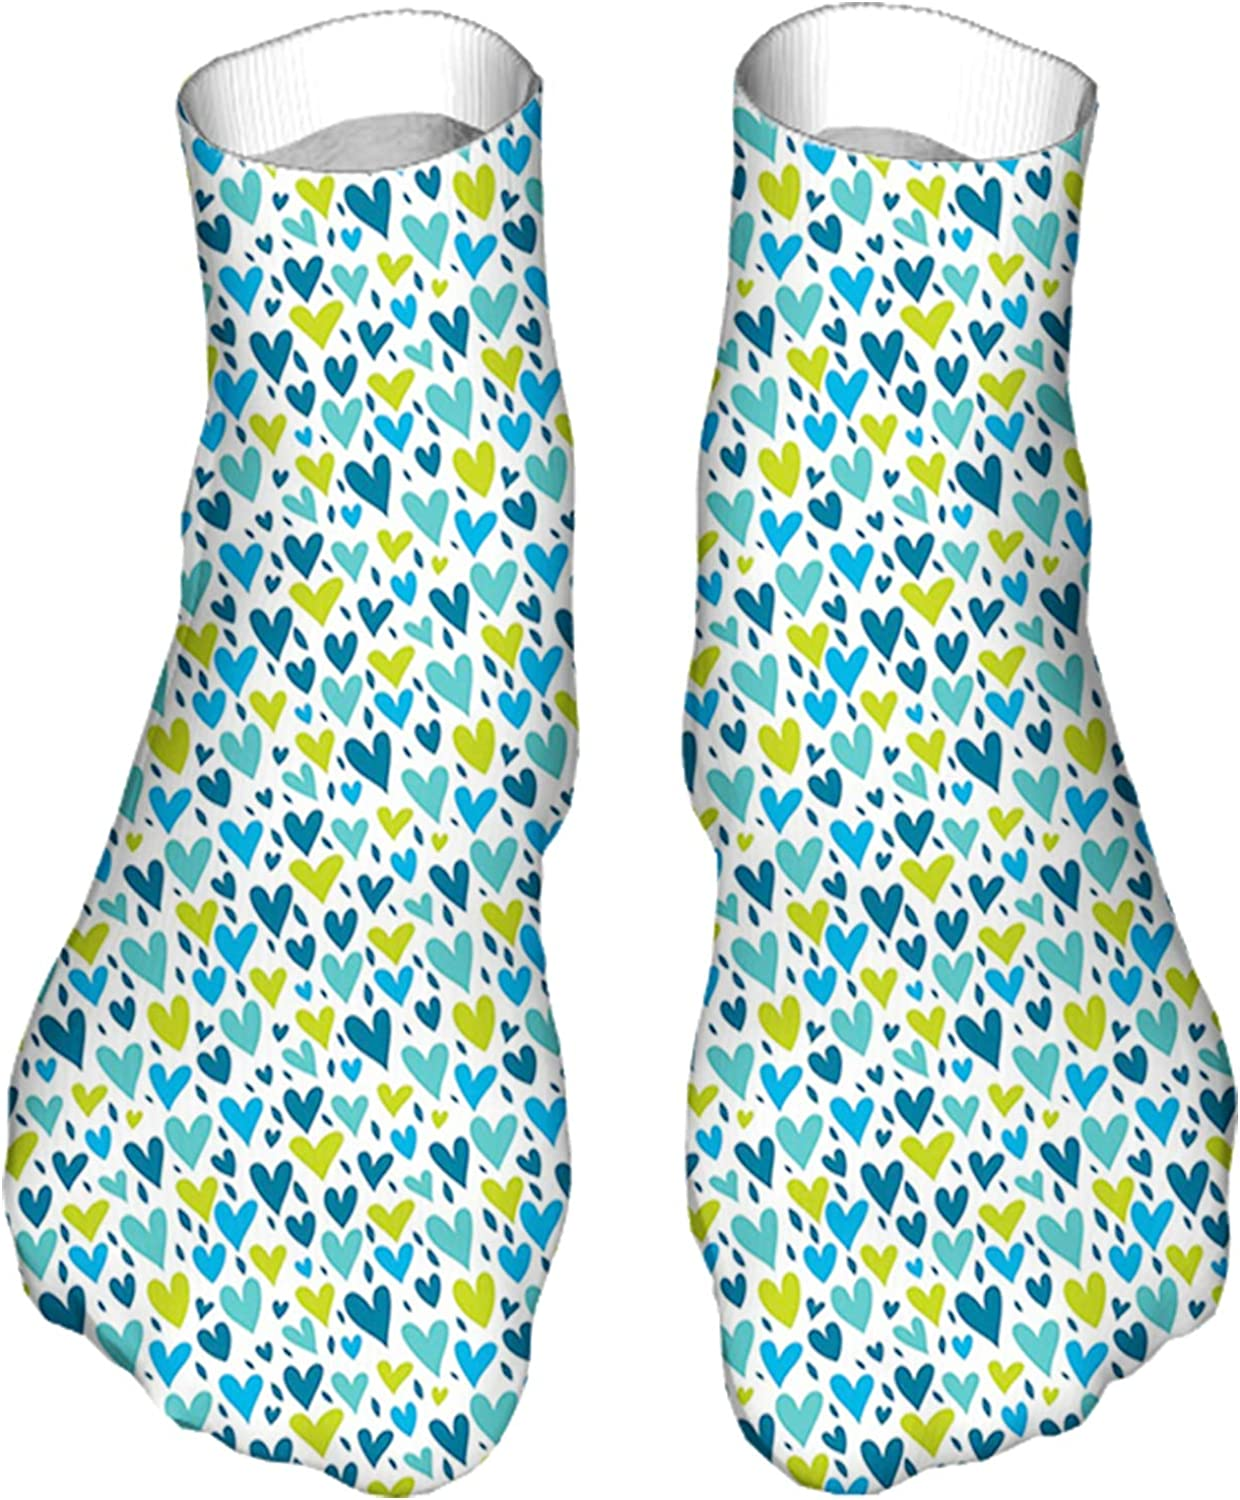 Women's Colorful Patterned Unisex Low Cut/No Show Socks,Irregular Hearts in Blue and Green Tones